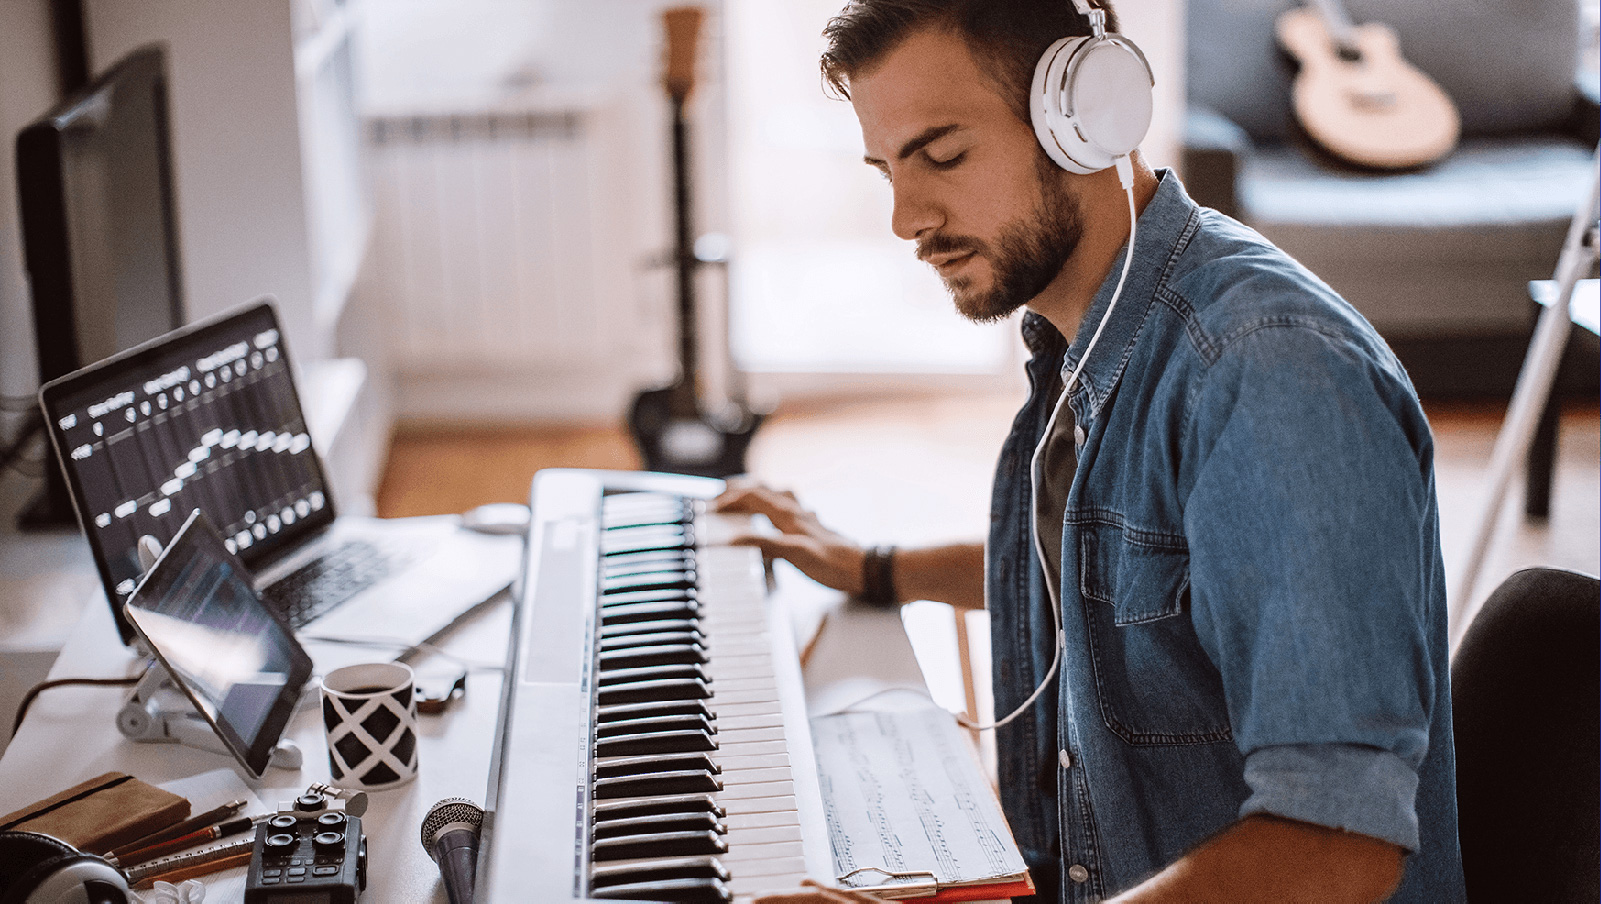 Man with headphones and using a keyboard piano.